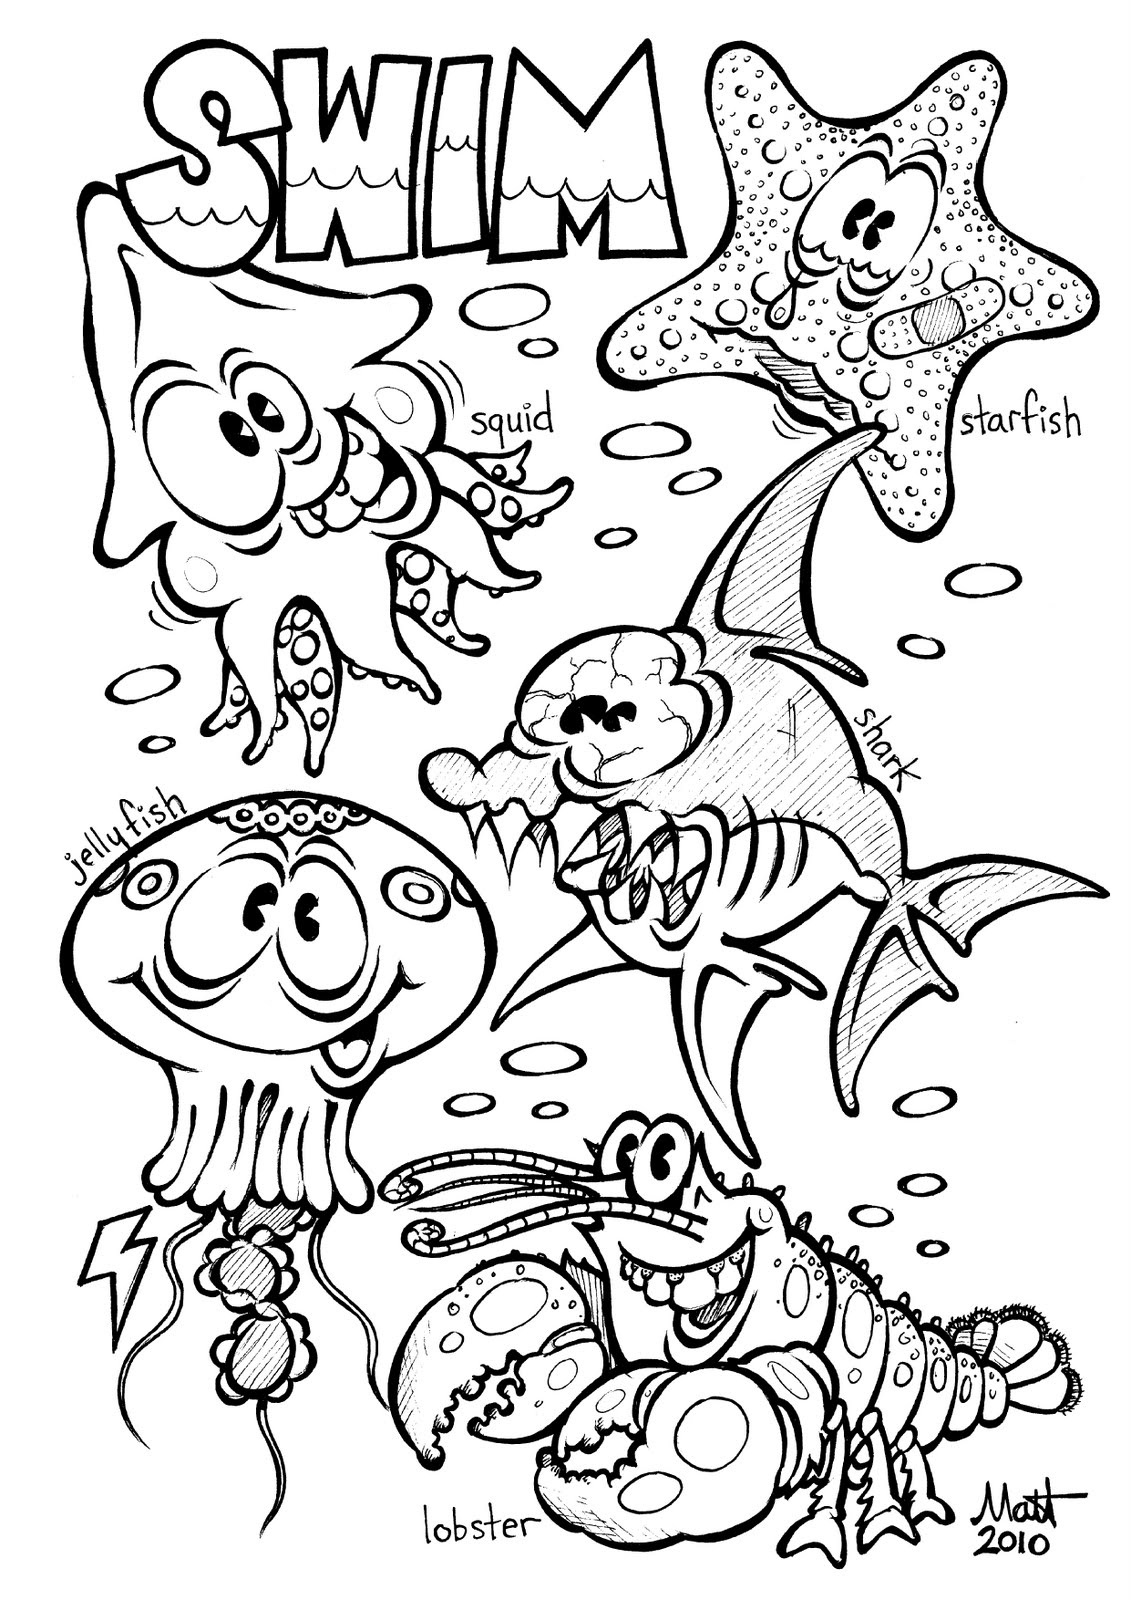 Ocean animals coloring pages for kids - Ocean Animal Coloring Pages